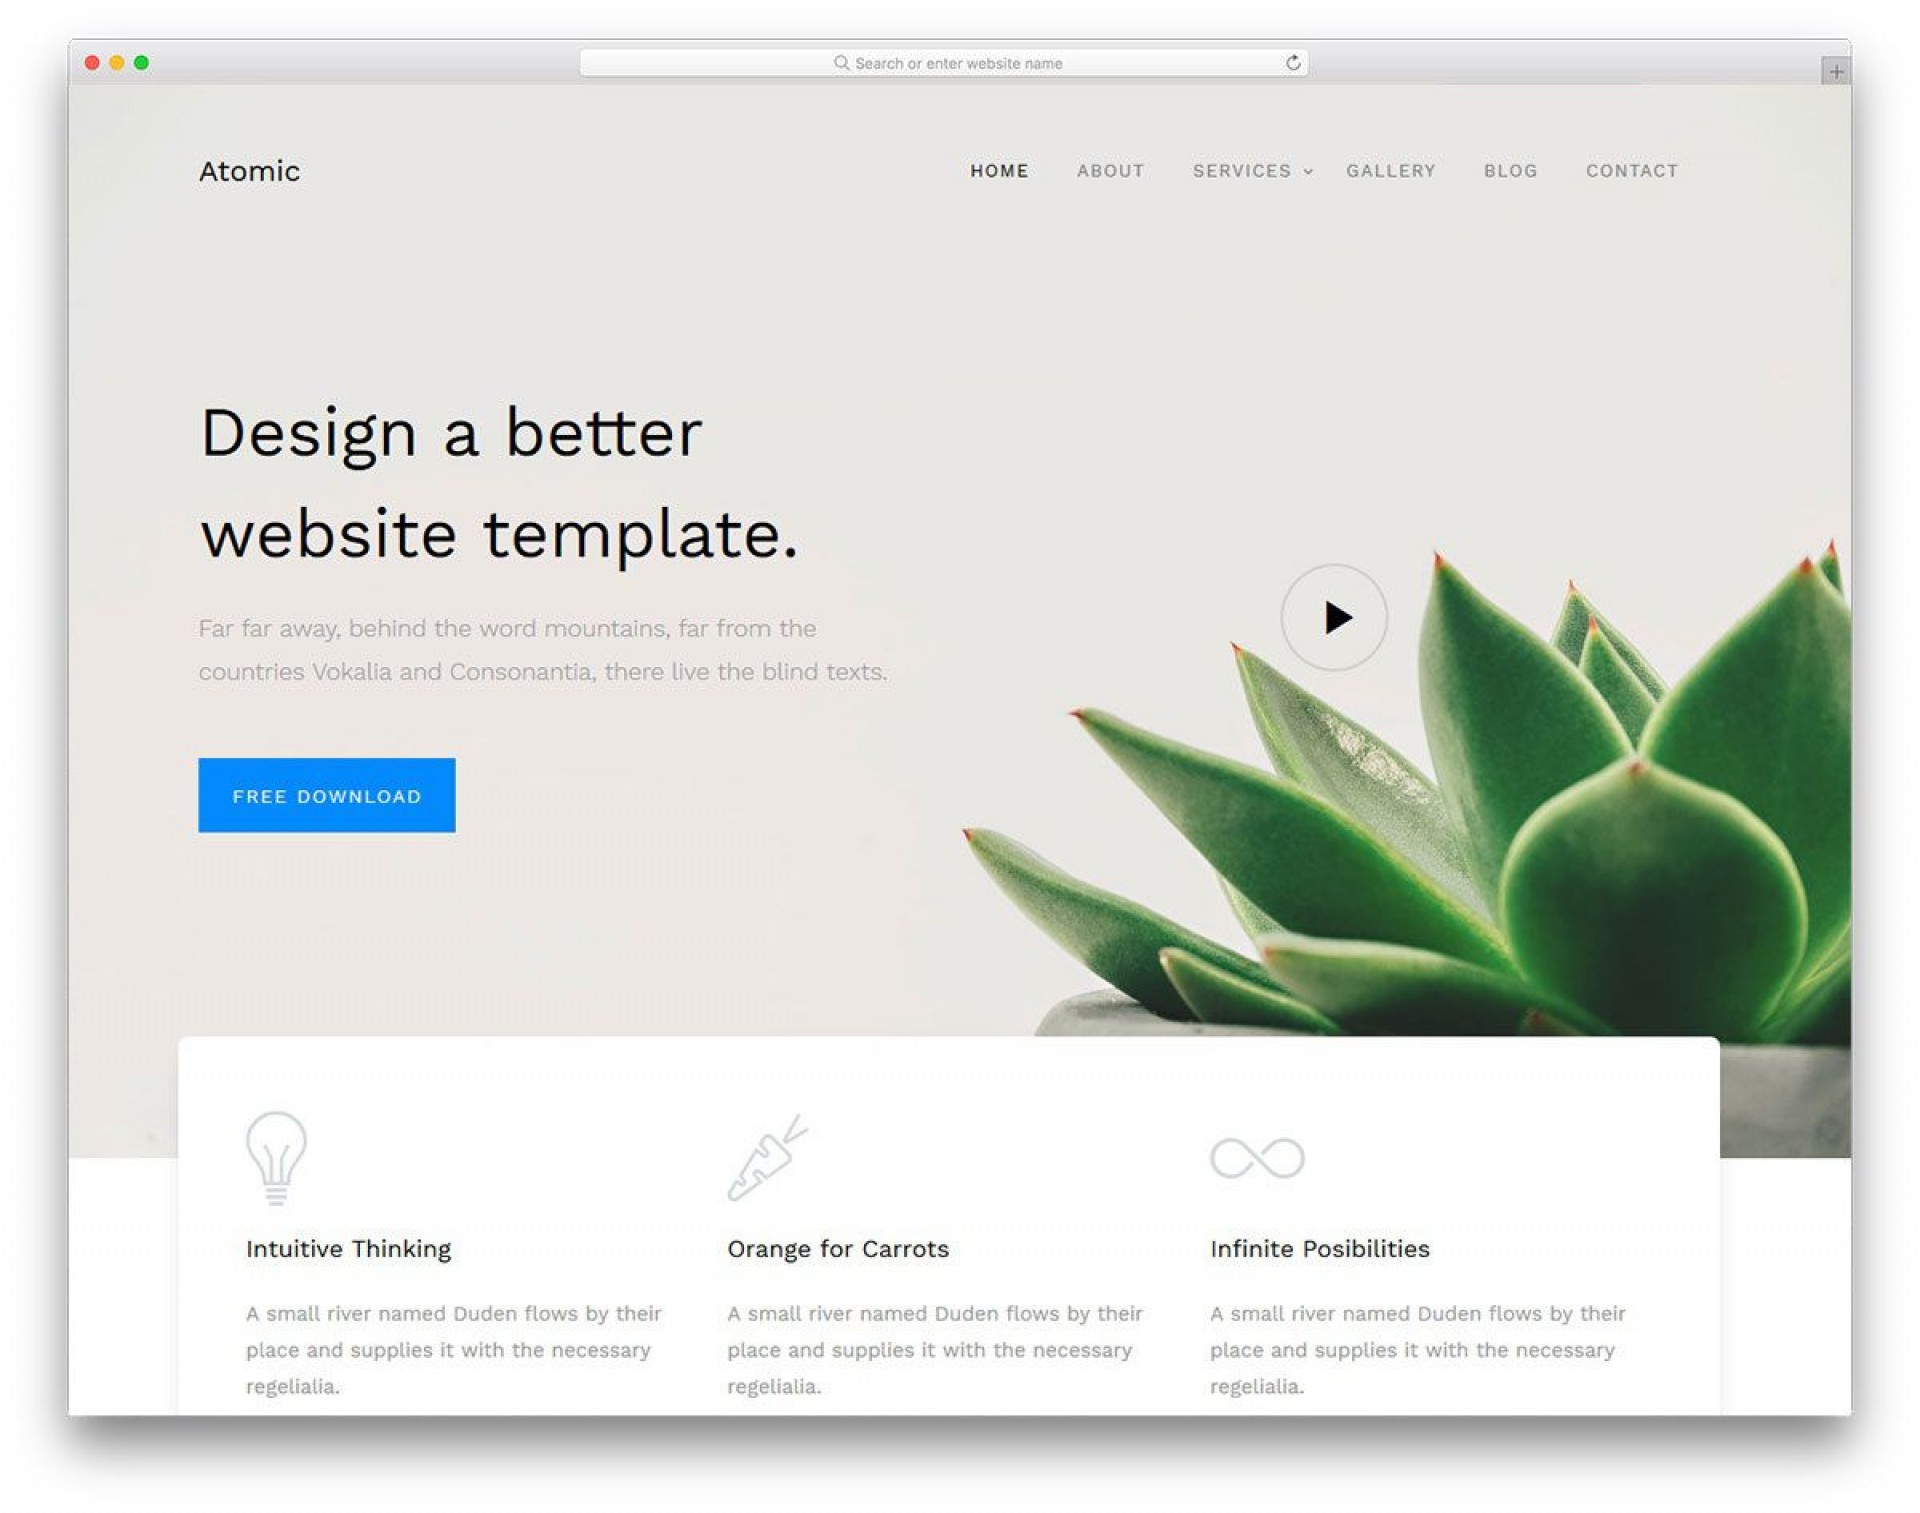 003 Surprising Website Template Html Free Download High Definition  Indian School Software Company Spice1920